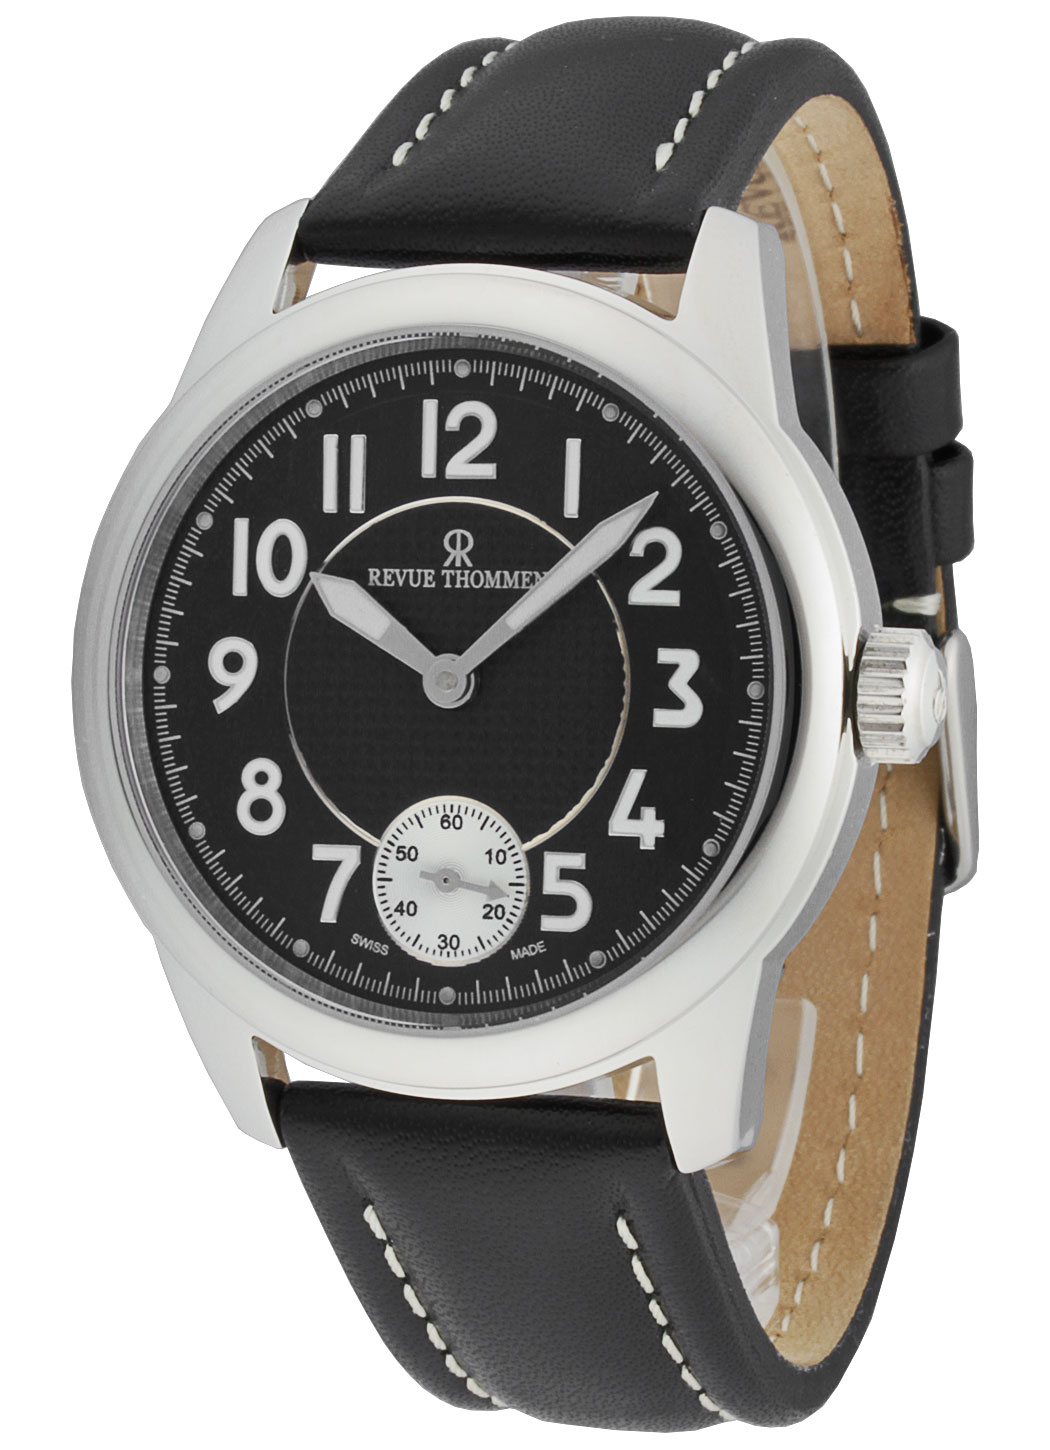 Revue thommen airspeed mechanical swiss made watch ebay for Swiss made watches